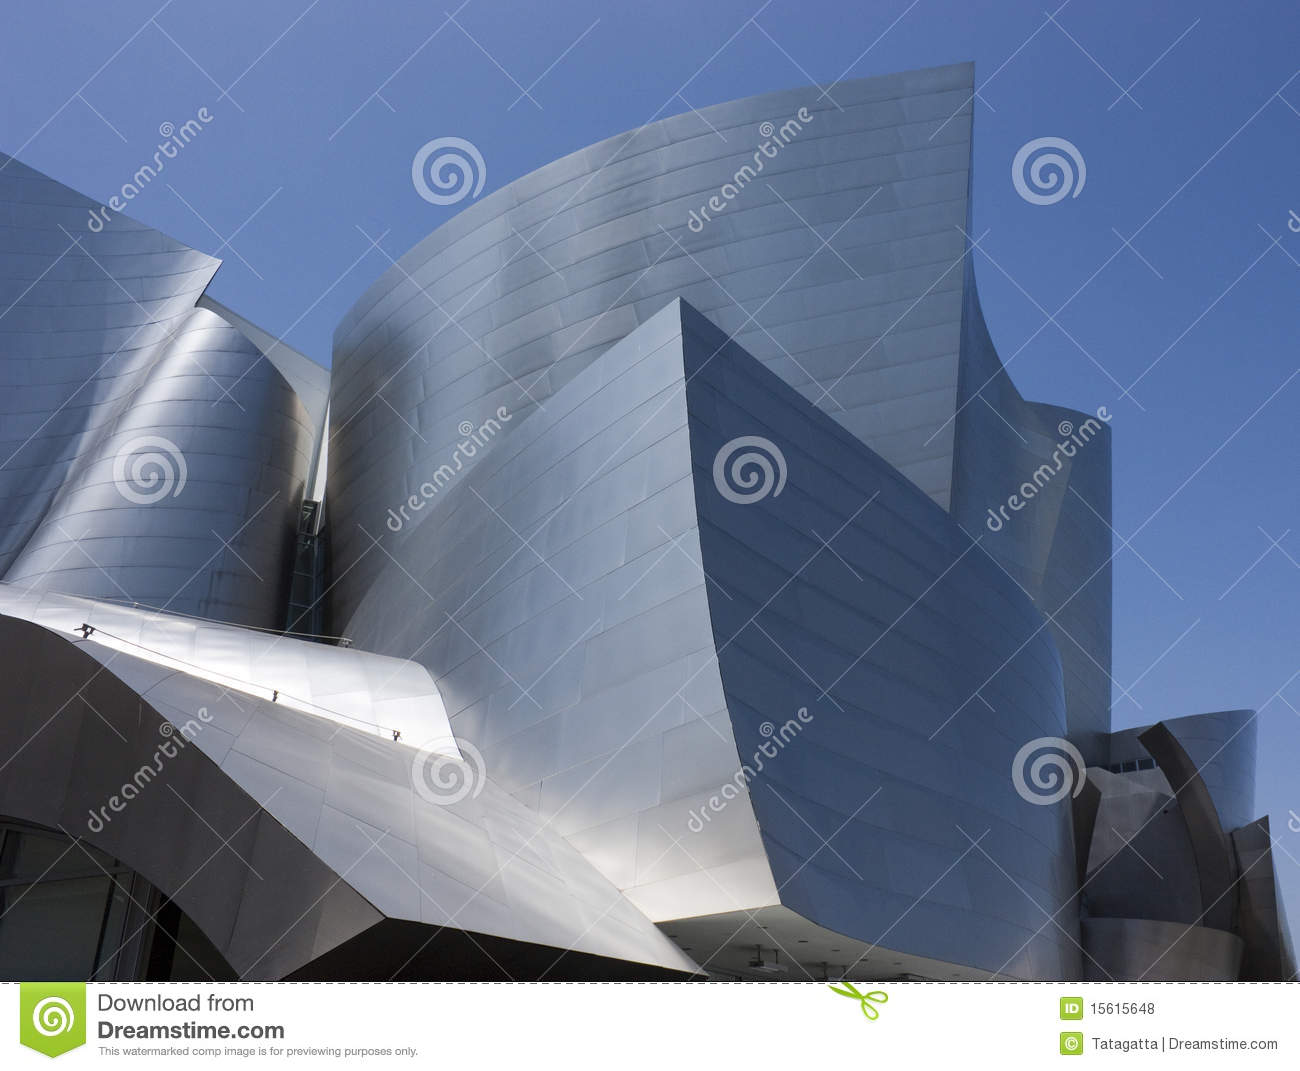 Abstract Architecture Building Stock Photo - Image of ...